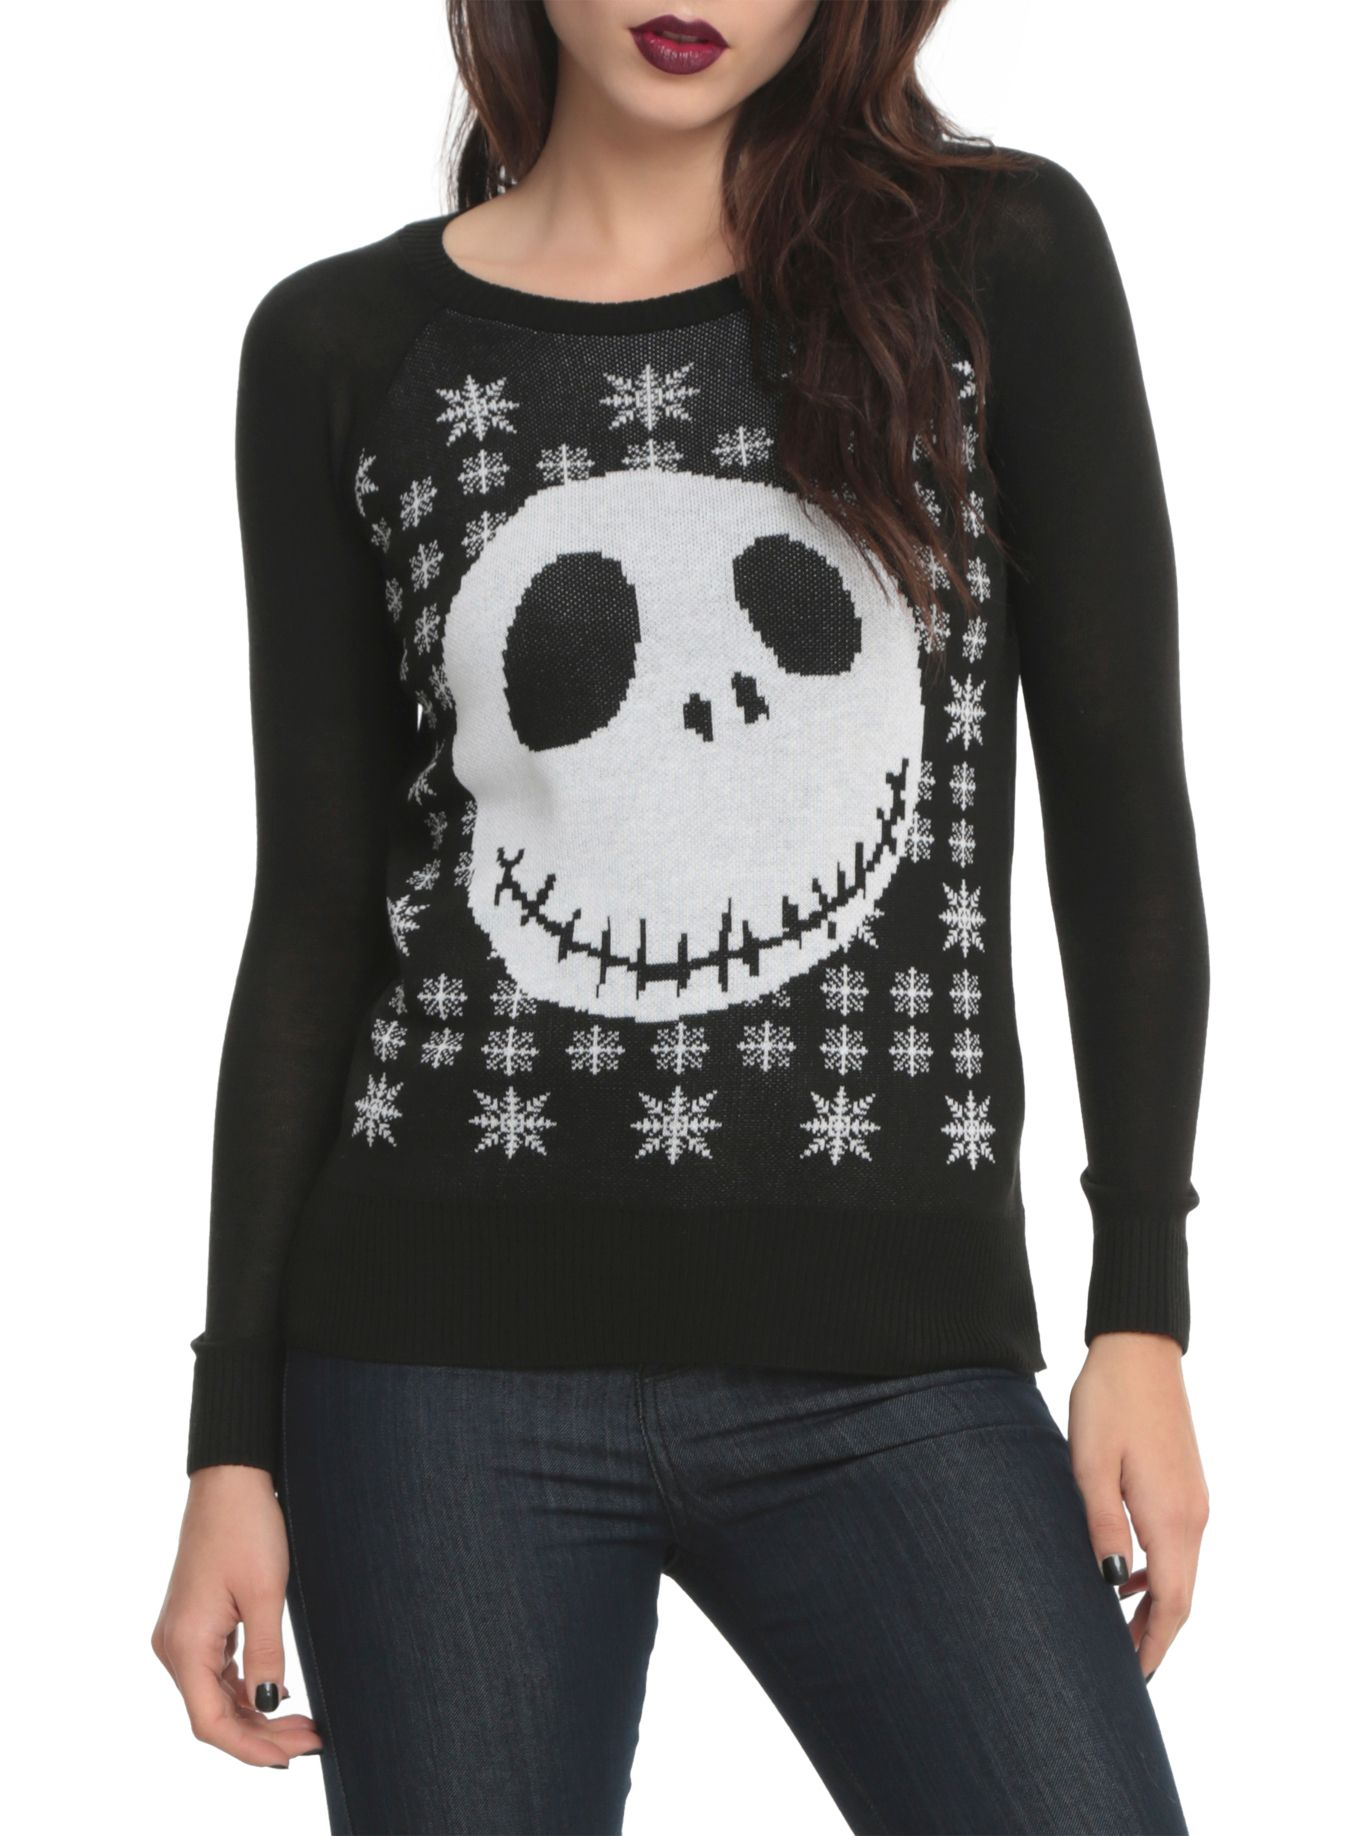 Tim Burton Christmas Jumper.The Nightmare Before Christmas Jack Girls Knit Pullover Top